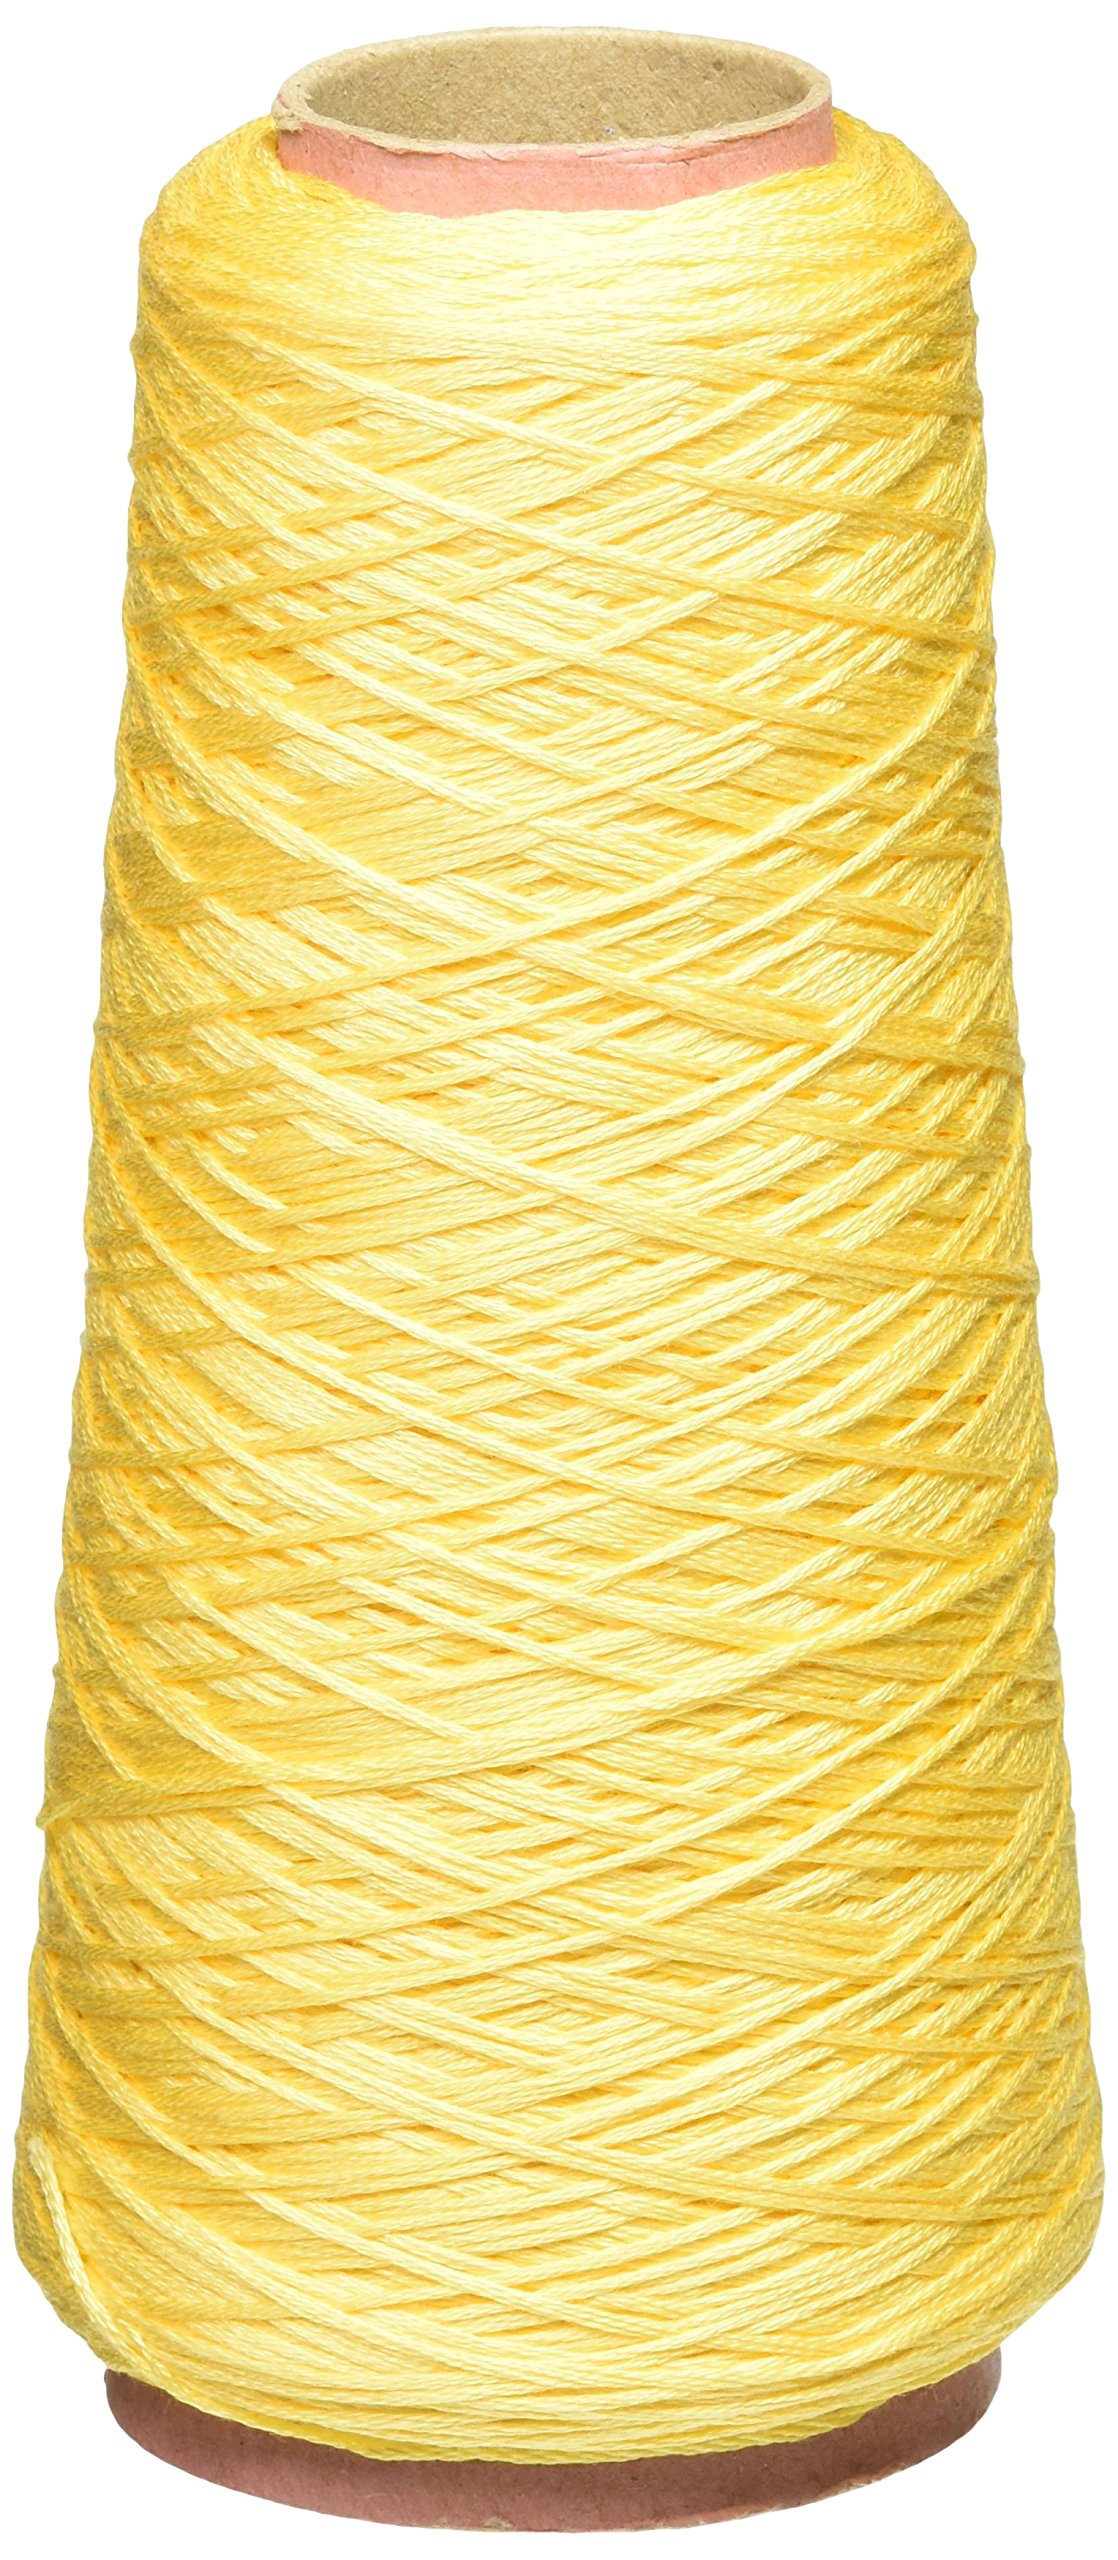 Apricot Medium 100gm DMC 6-Strand Embroidery Floss